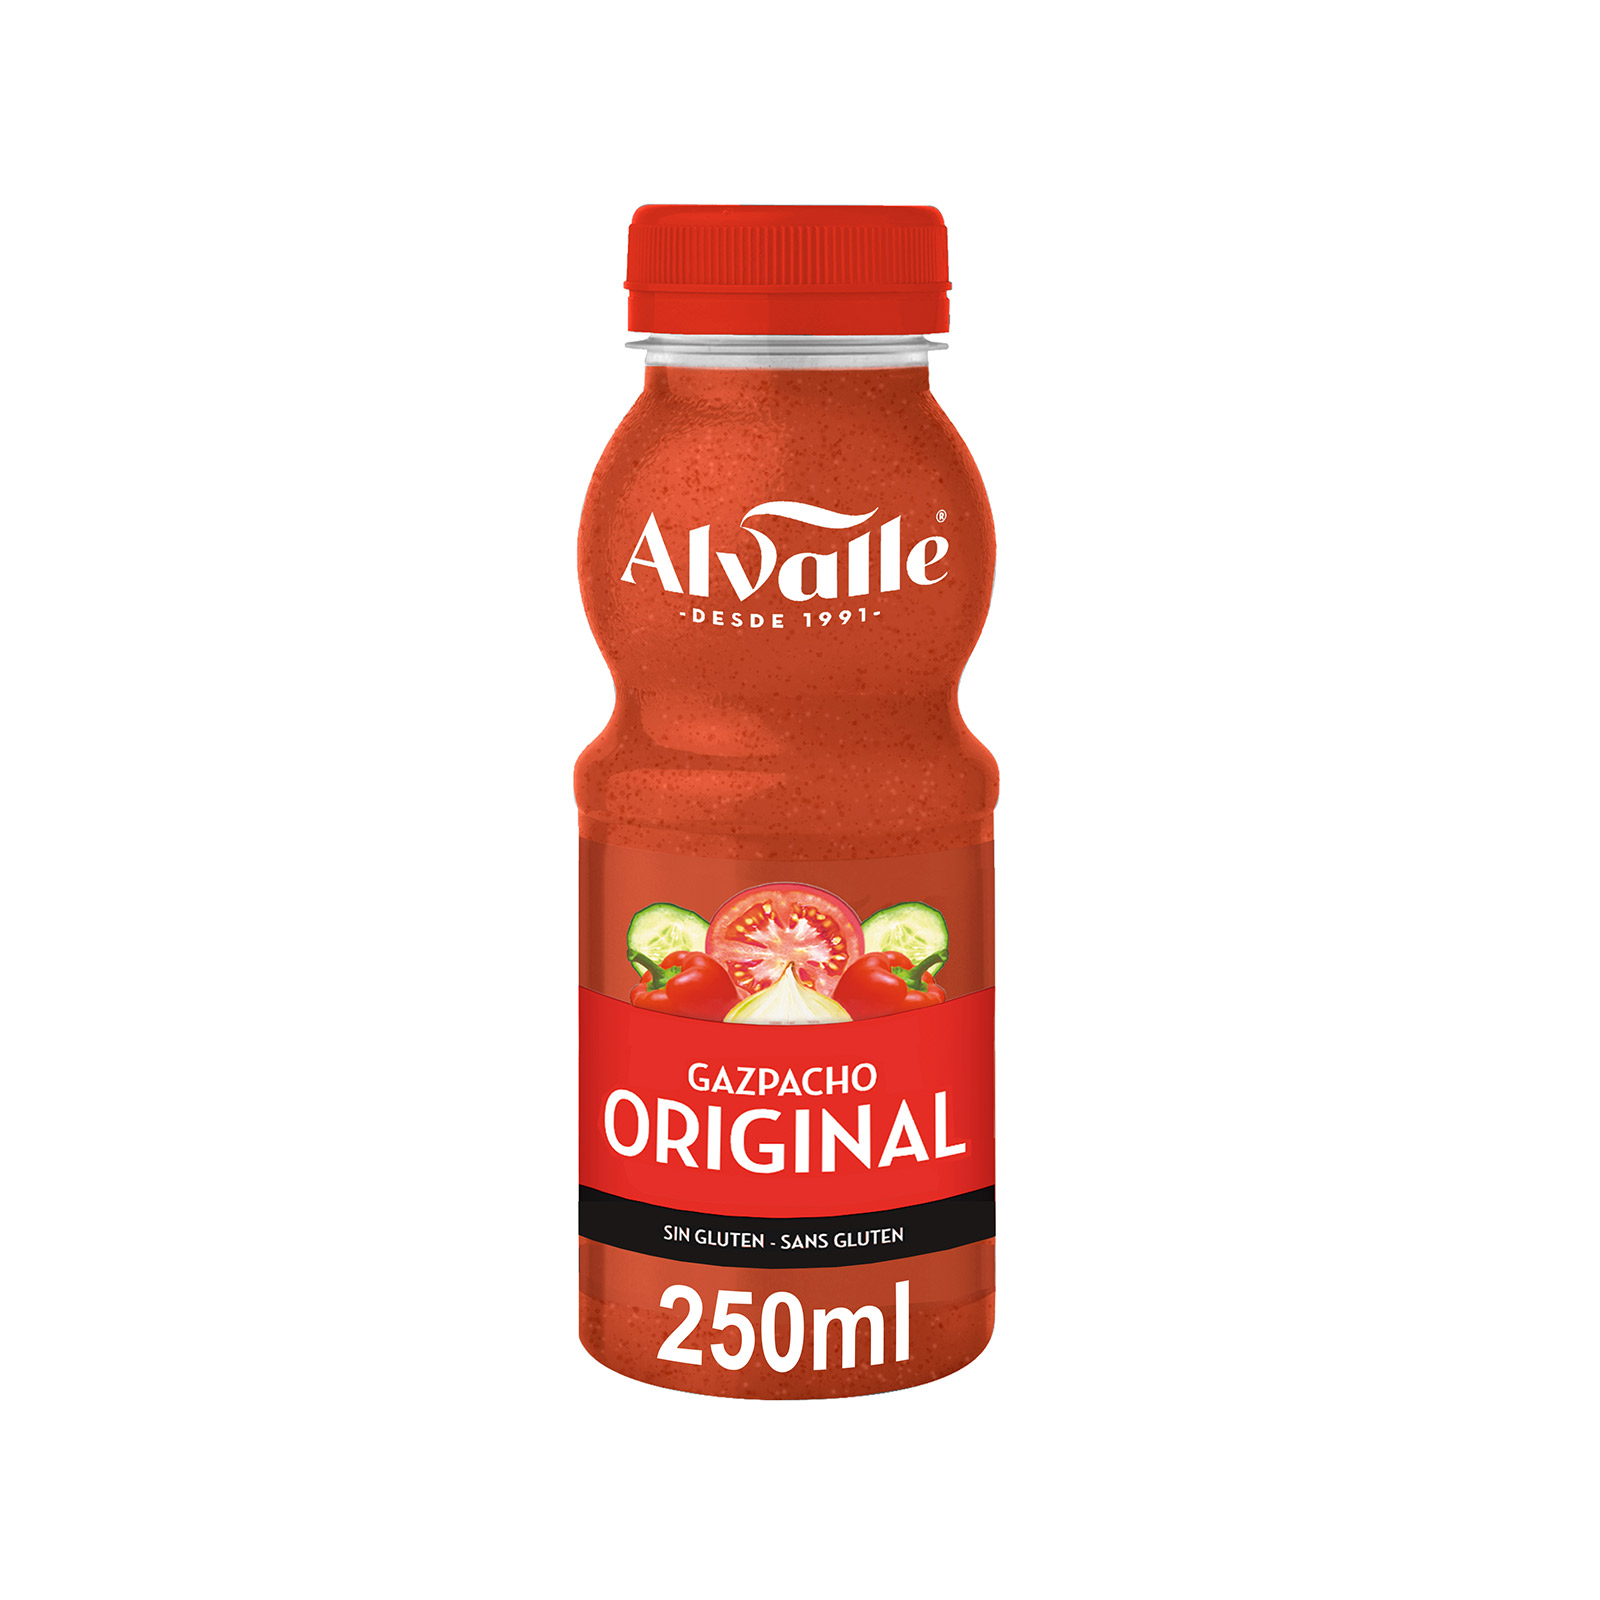 Alvalle alvalle gazpacho original 250ml pet de 25cl. en botella